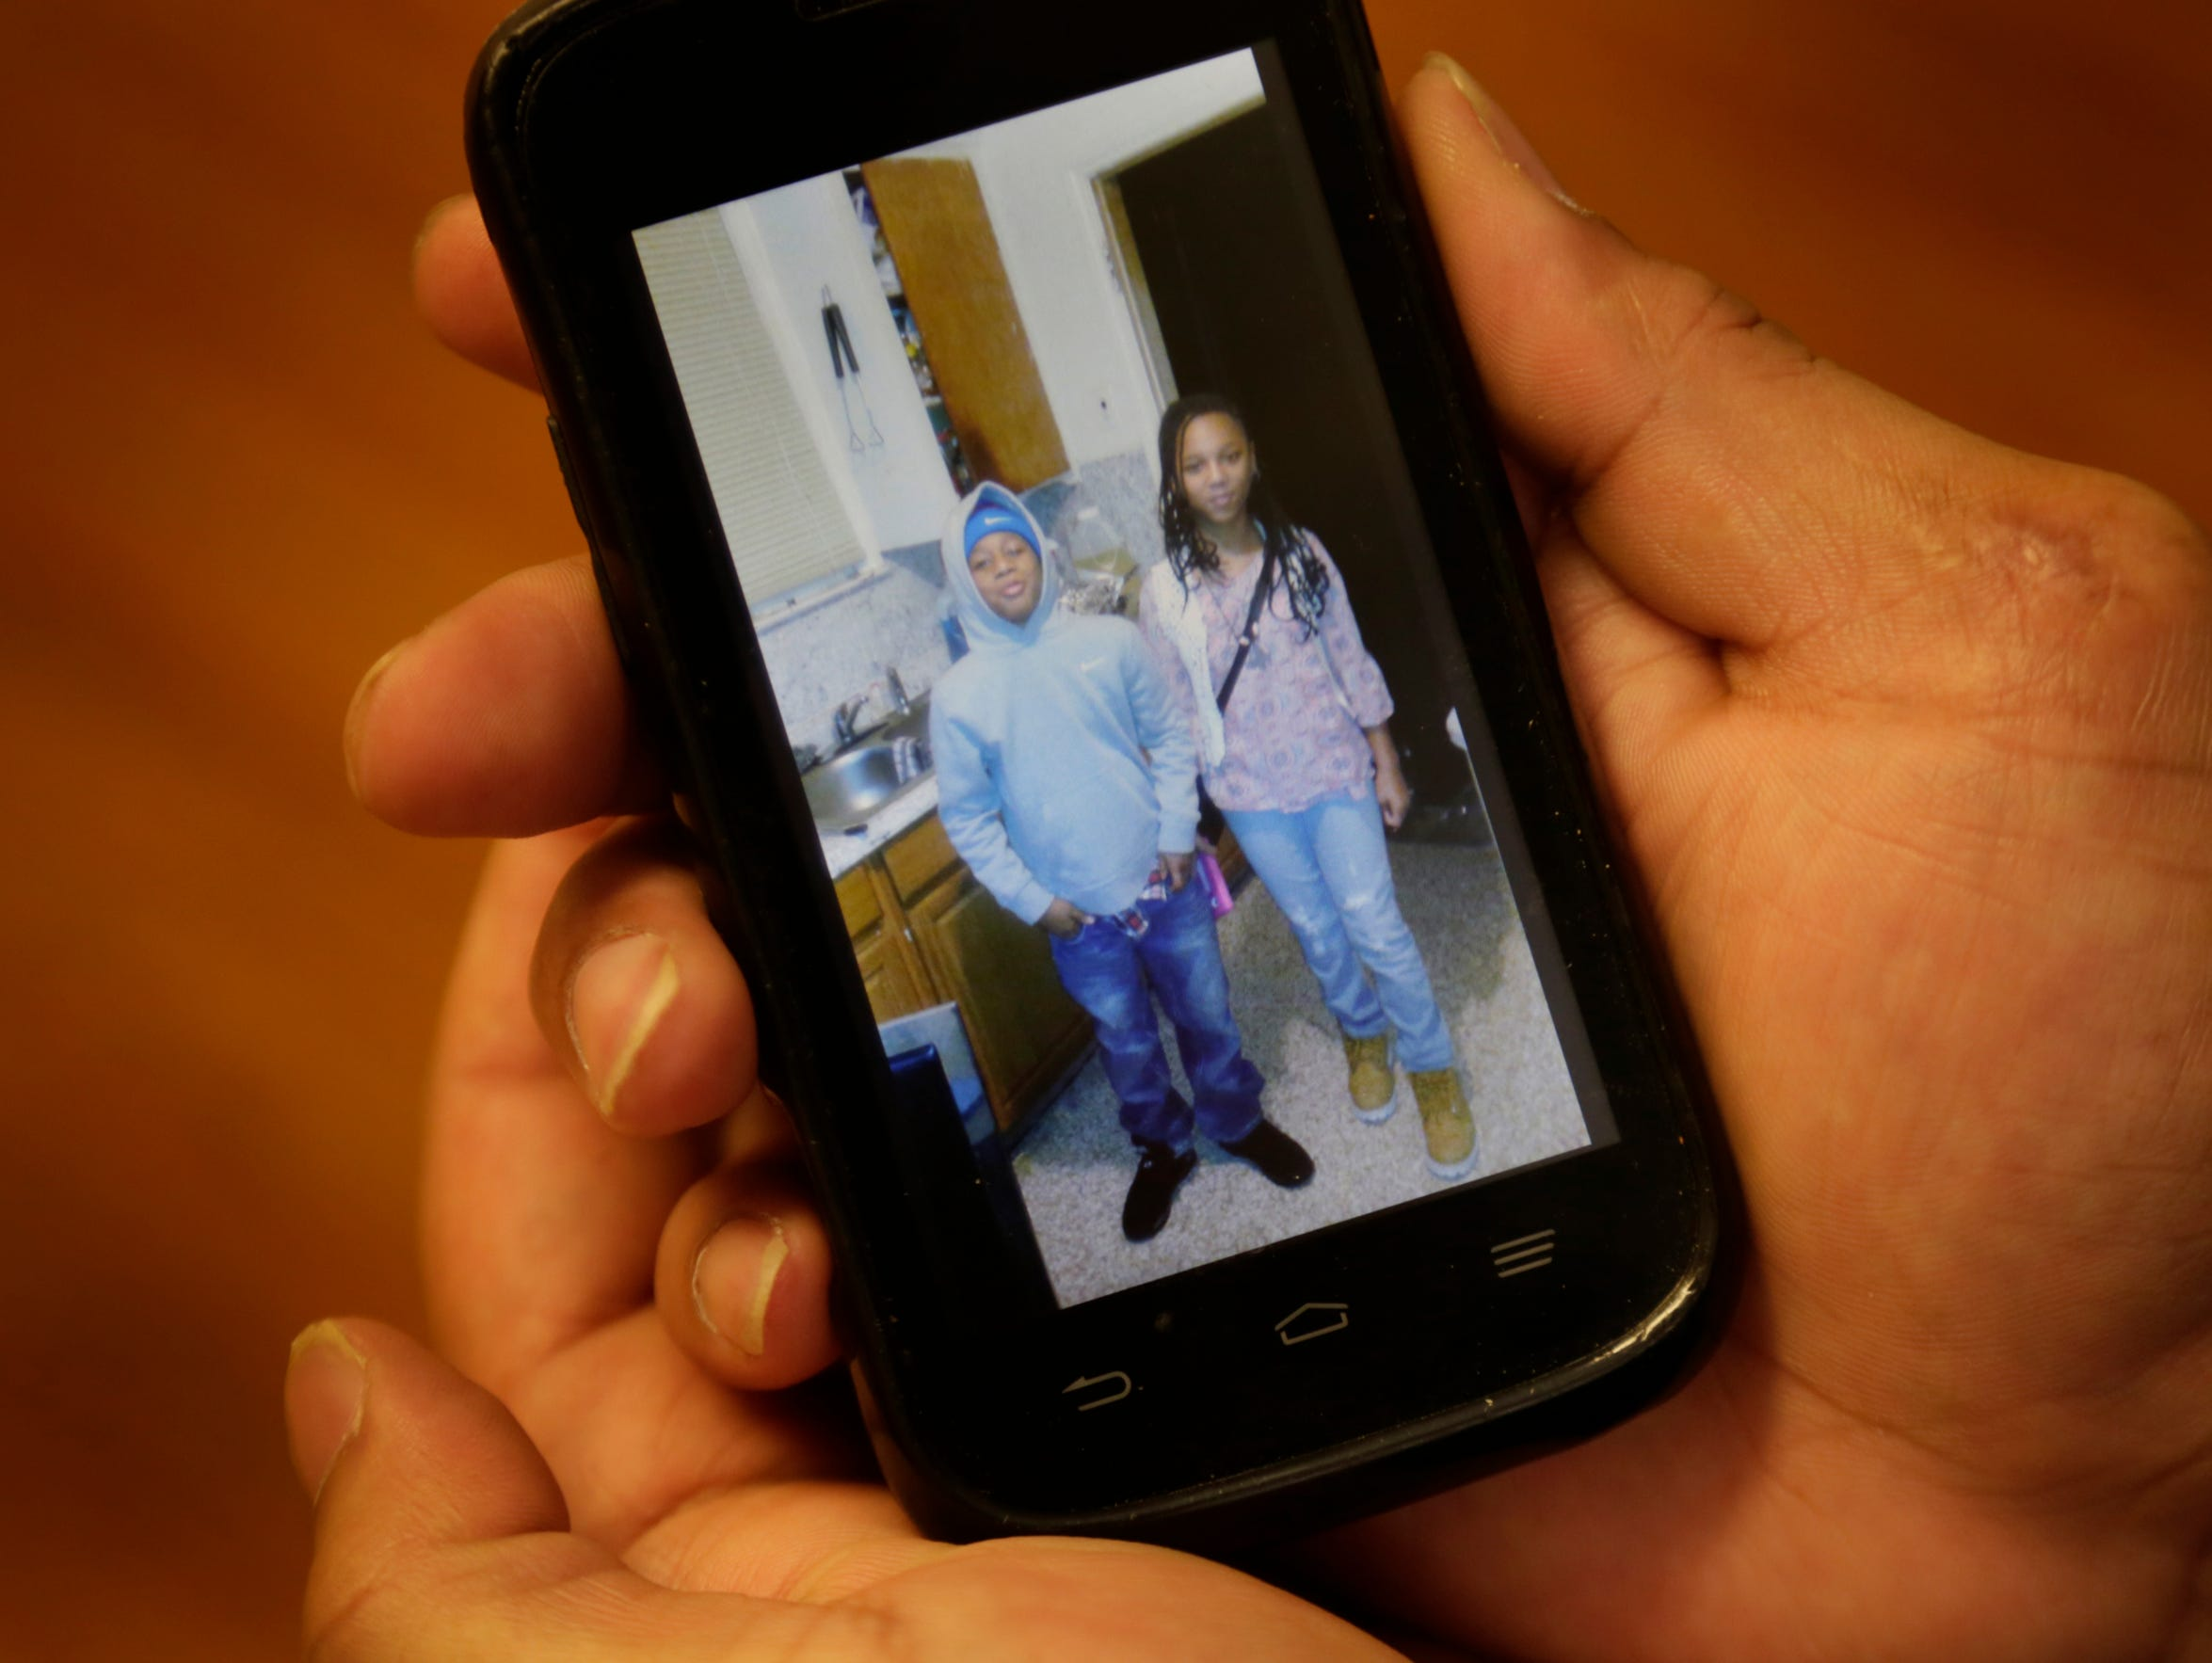 Lamar McGaughy, 38, of Detroit, shows a photo of his